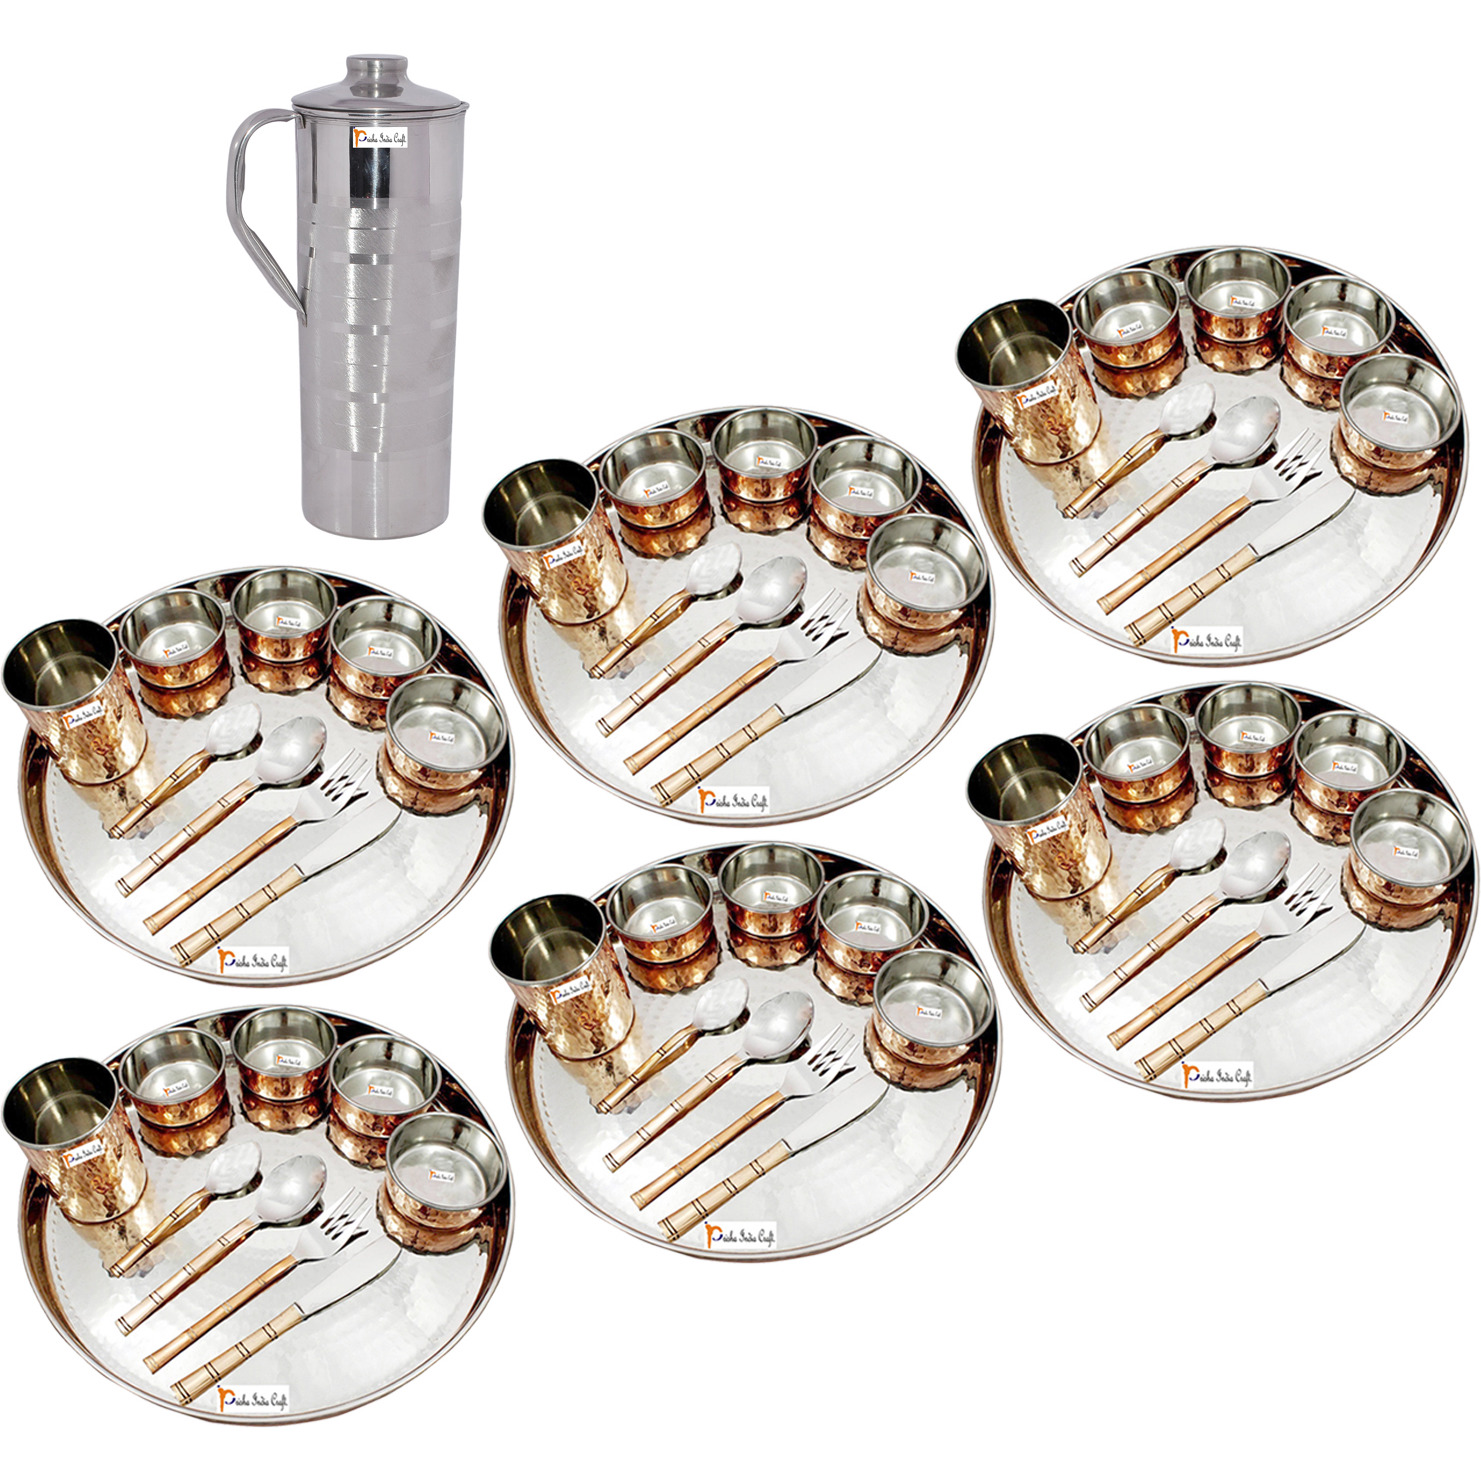 Prisha India Craft B. Set of 6 Dinnerware Traditional Stainless Steel Copper Dinner Set of Thali Plate, Bowls, Glass and Spoons, Dia 13  With 1 Luxury Style Stainless Steel Copper Pitcher Jug - Christmas Gift